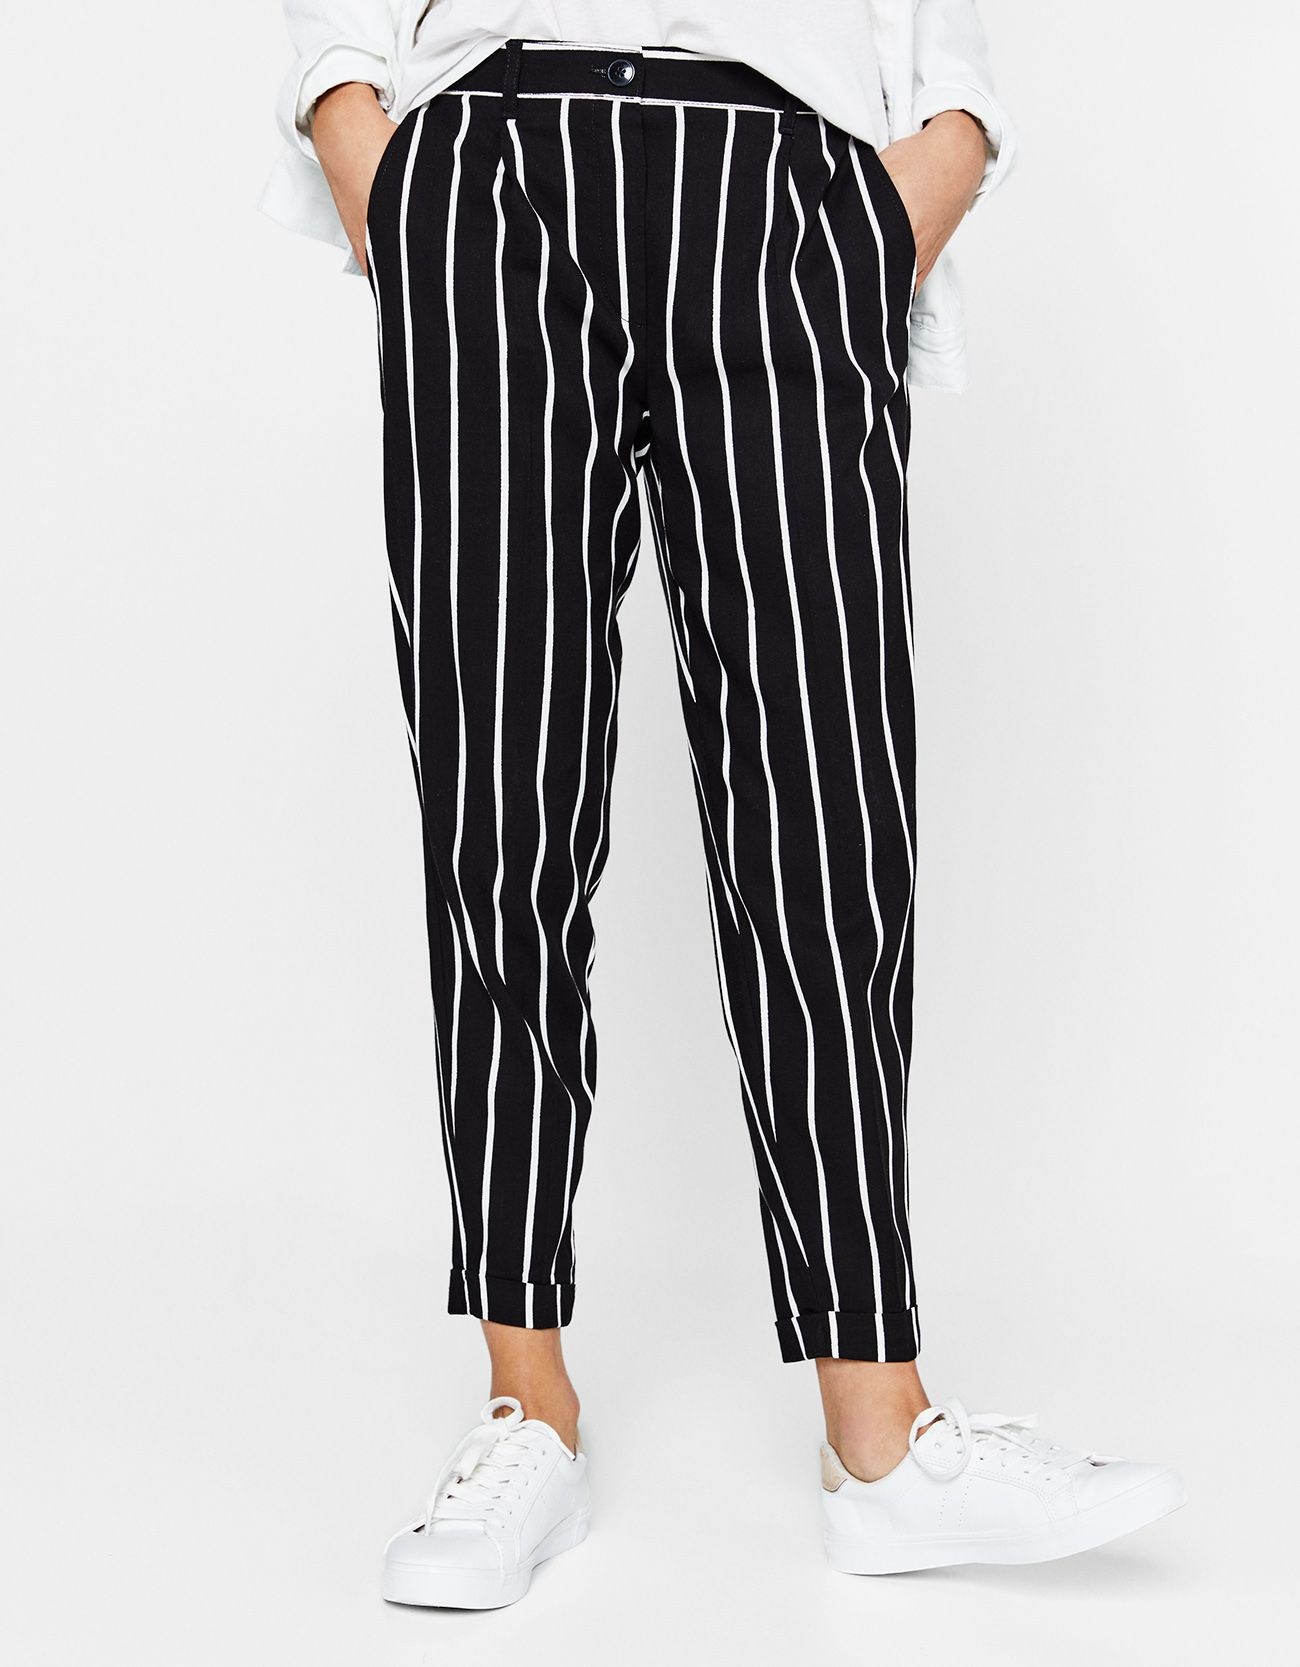 Tailored Pleated Jogging Trousers Discover This And Many More Items In Bershka With New Products Every Week Clothes Outfit Inspiration Women Trousers